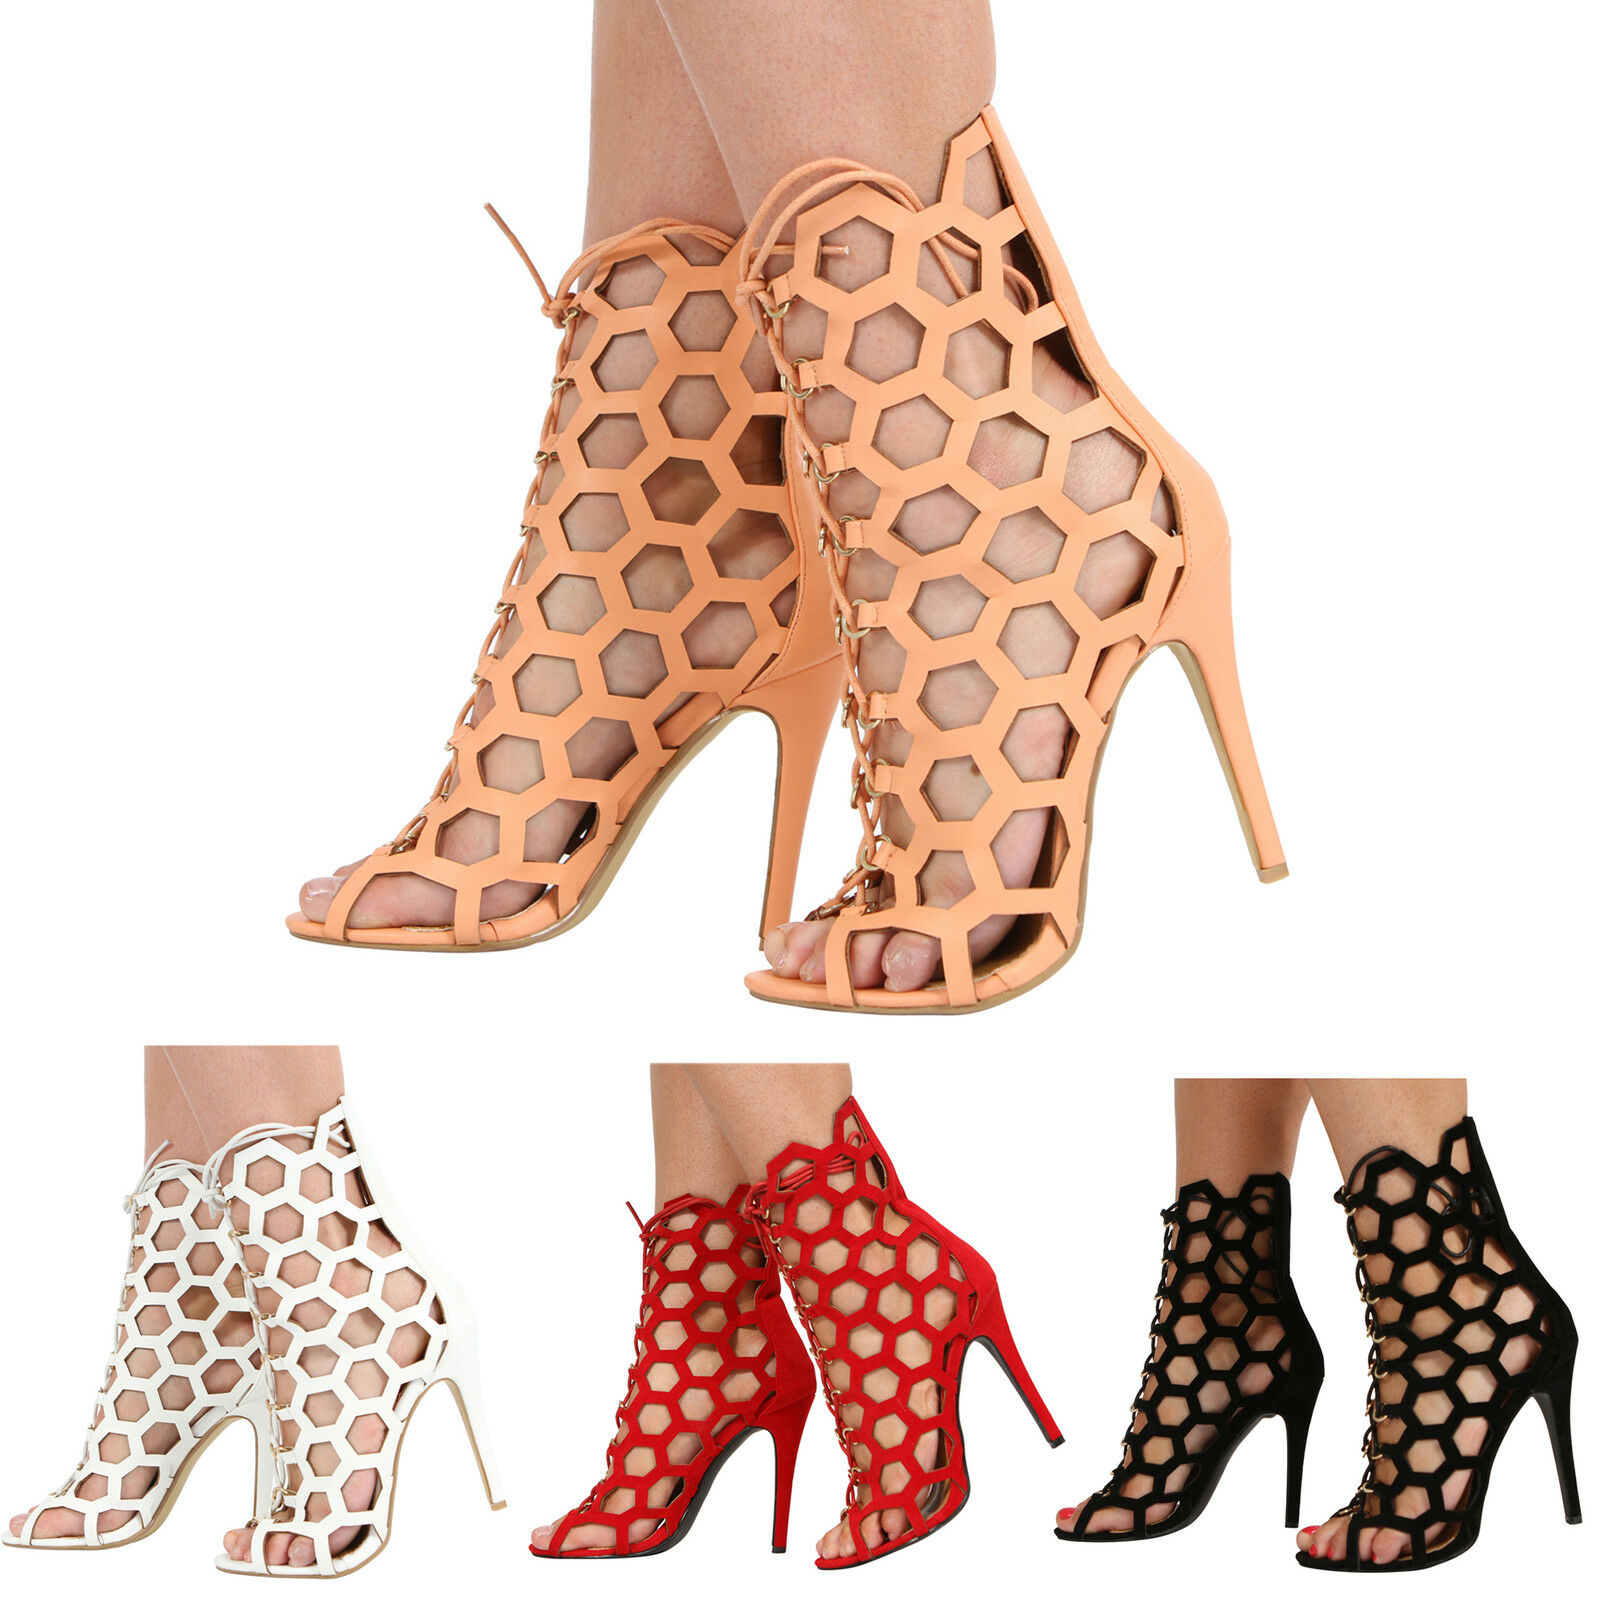 NEW WOMENS HIGH HEEL CUT OUT CAGED PEEPTOE LACE UP LADIES SANDALS SHOES SIZE 3-8